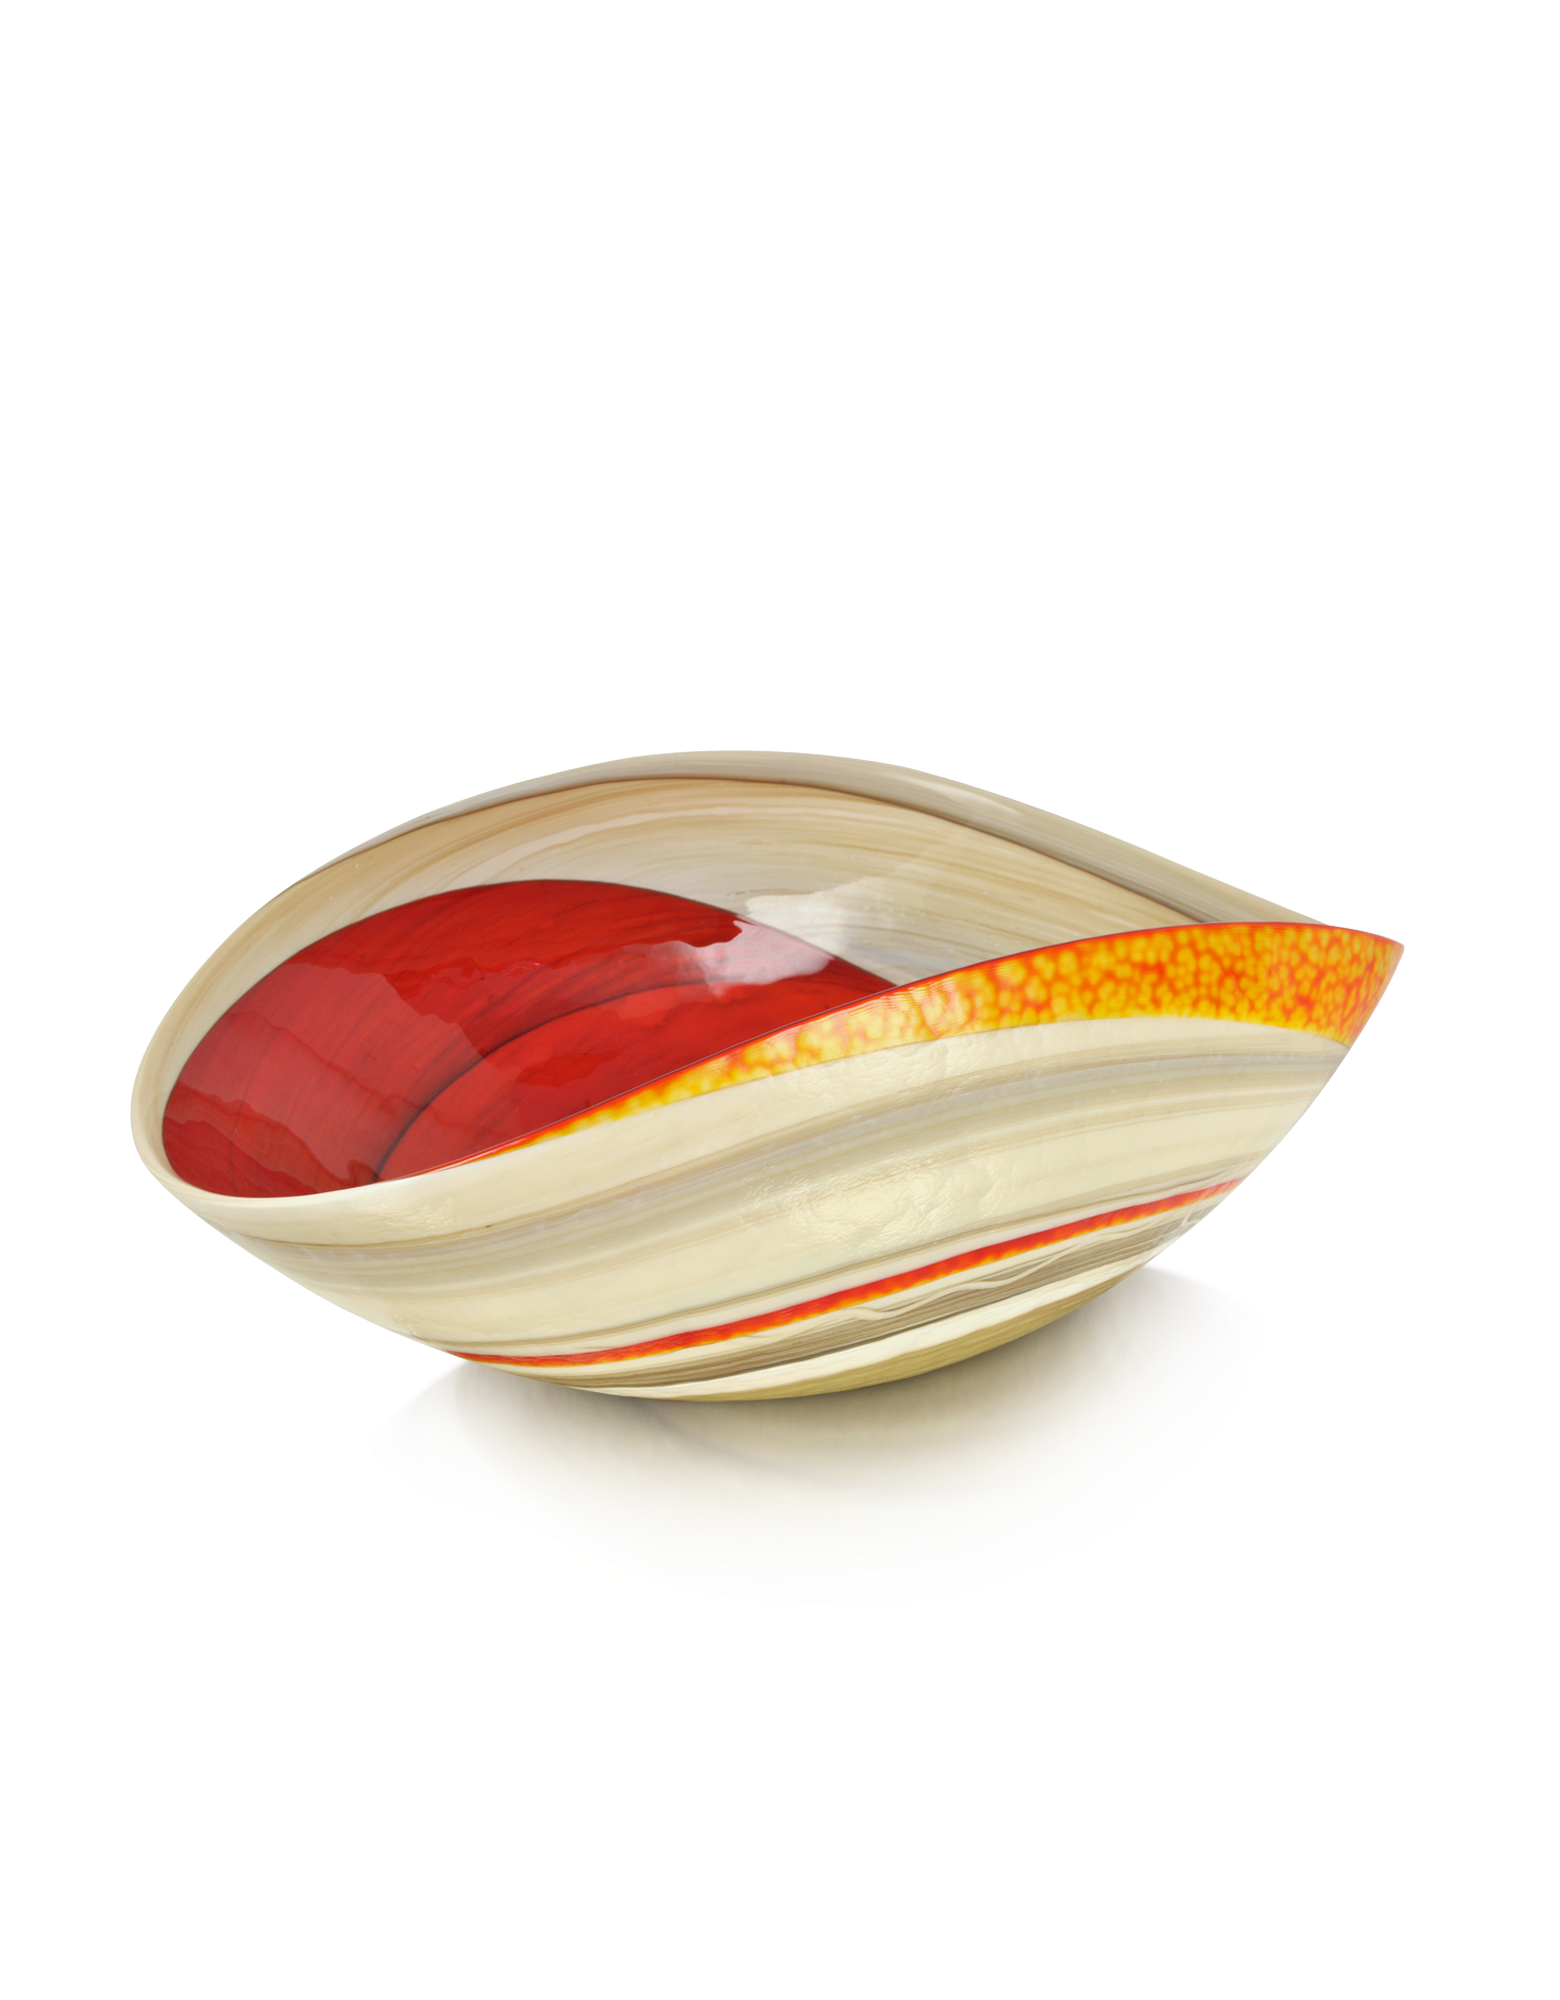 Image of Cartoccio - Medium Red and Ivory Marbled Murano Glass Folded Bowl